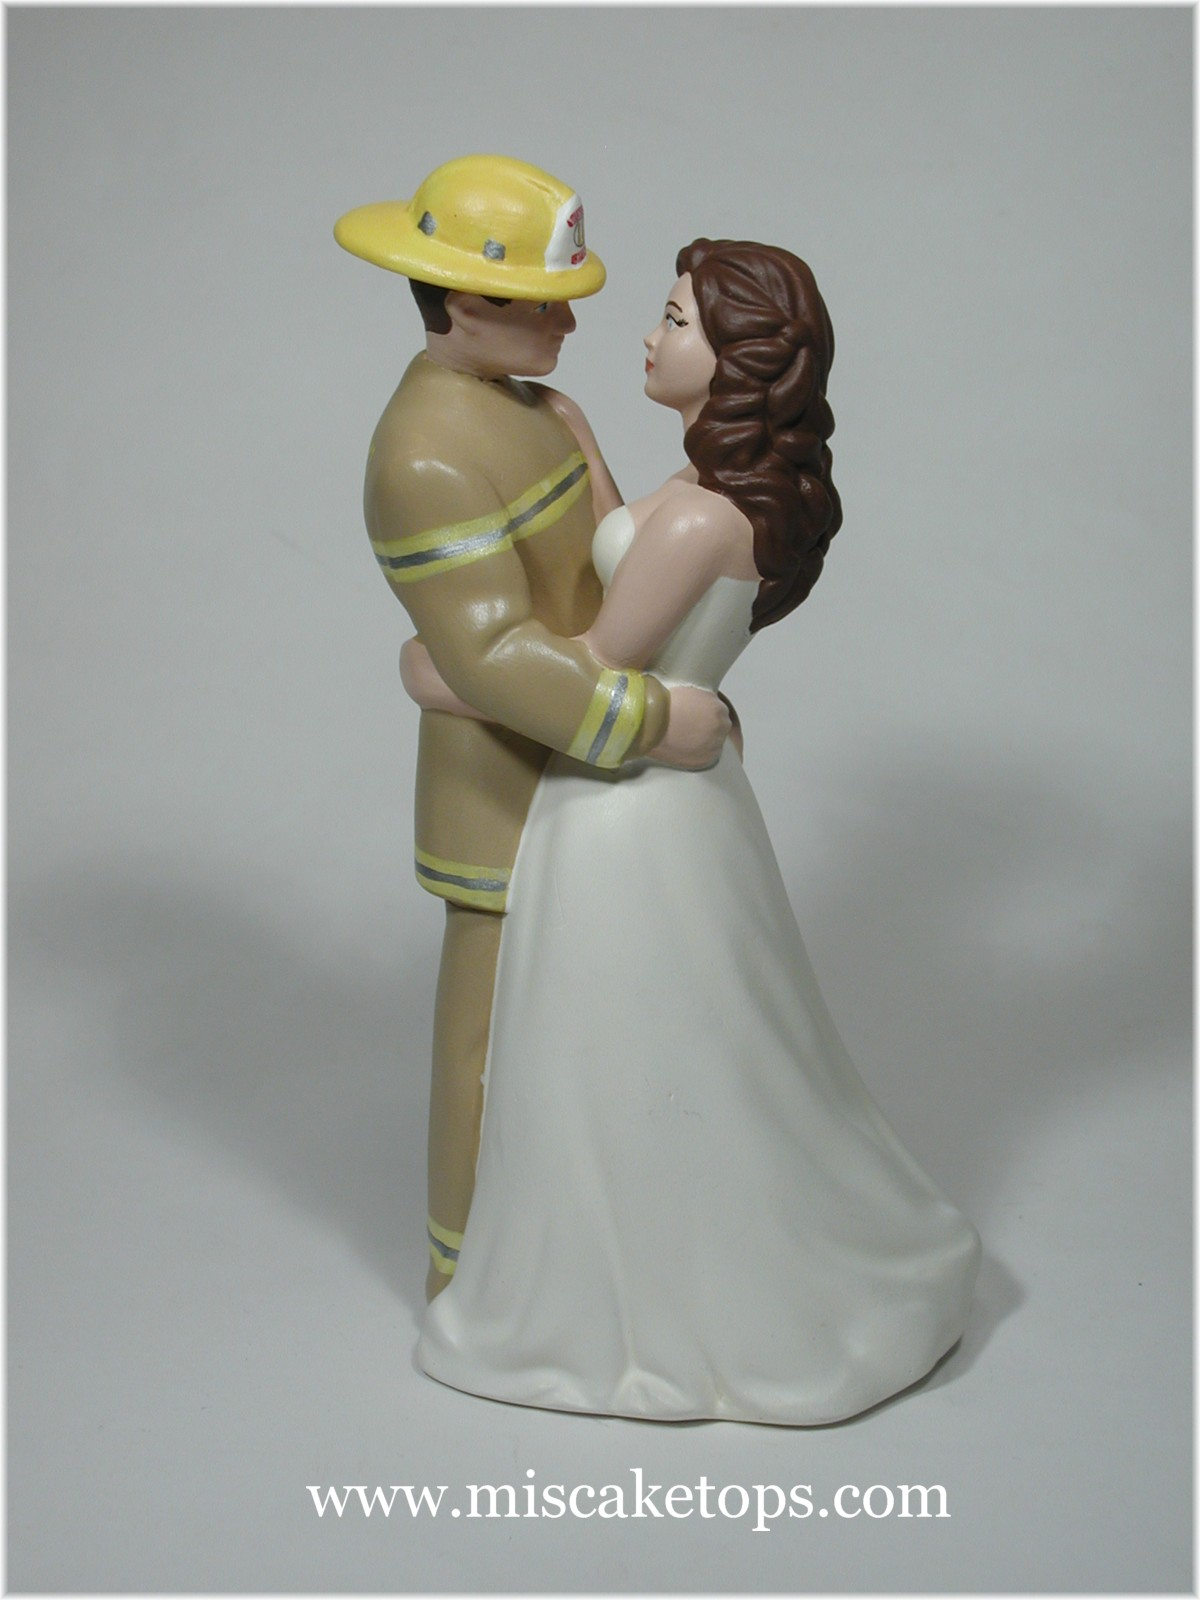 Enchantment Personalized Customized Bride And Groom Wedding Cake Toppers Tops Figurines